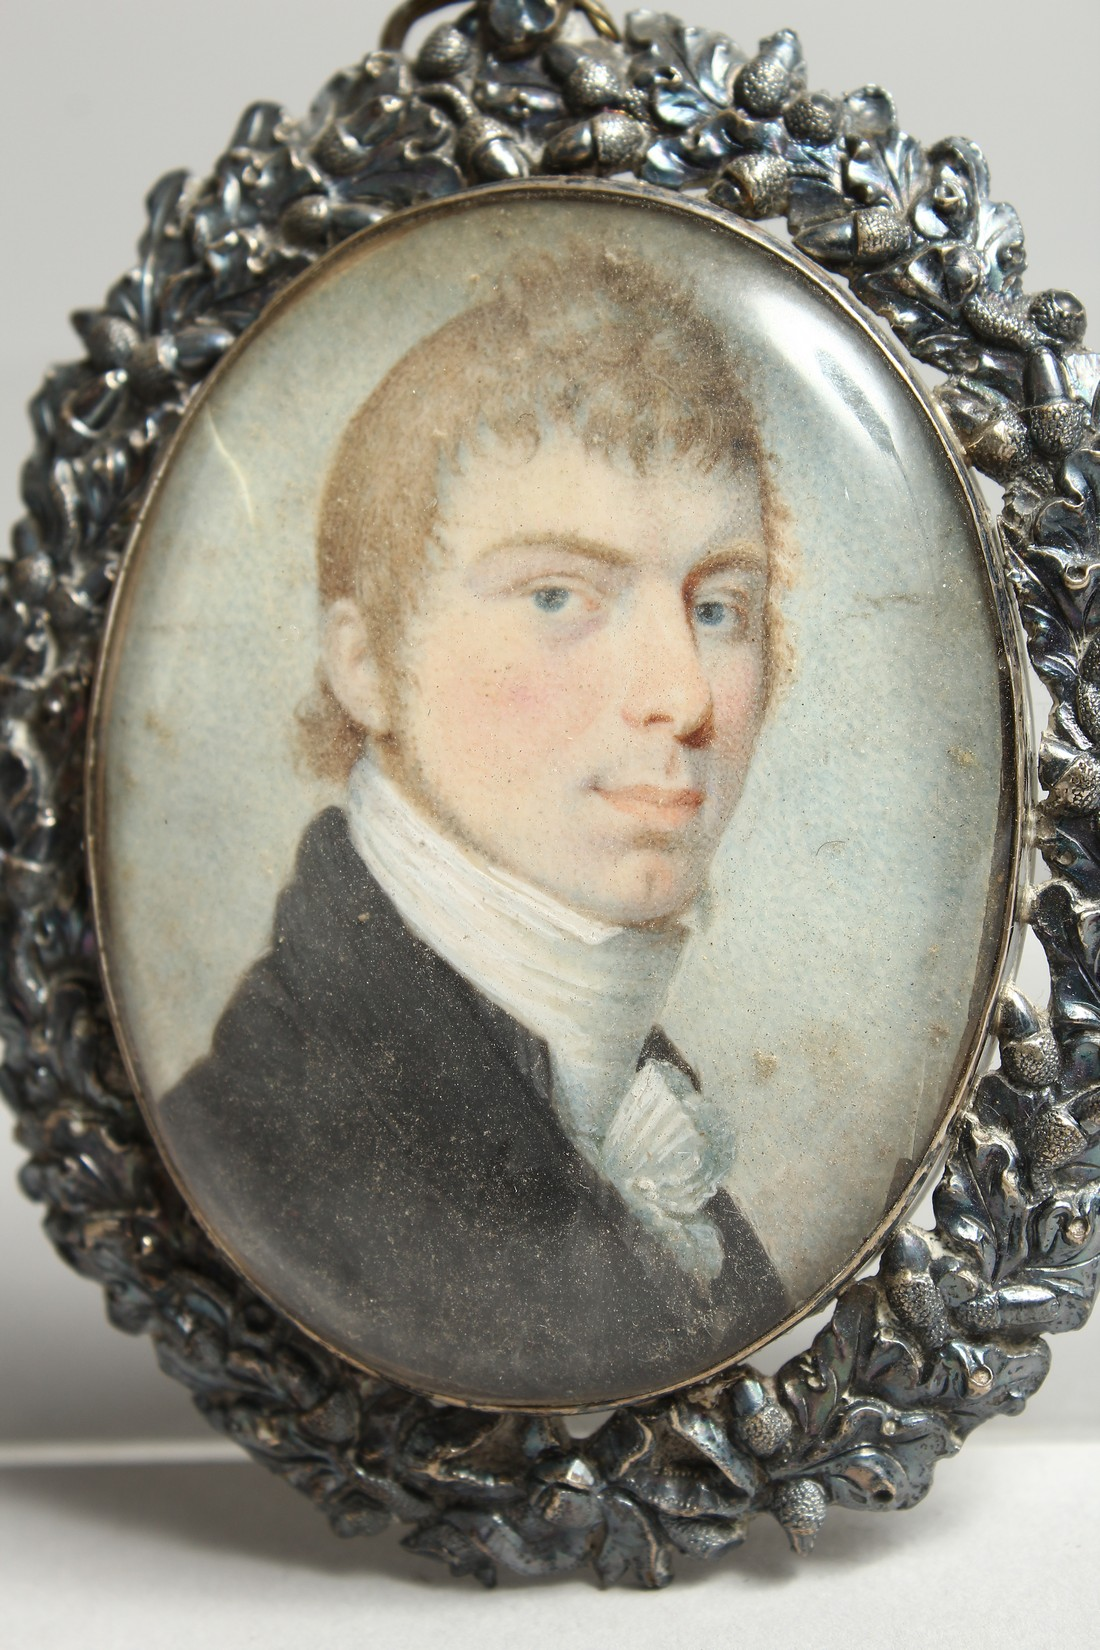 A GEORGIAN OVAL MINIATURE OF A YOUNG MAN, in a silver frame. 2.5ins x 2ins. - Image 2 of 3